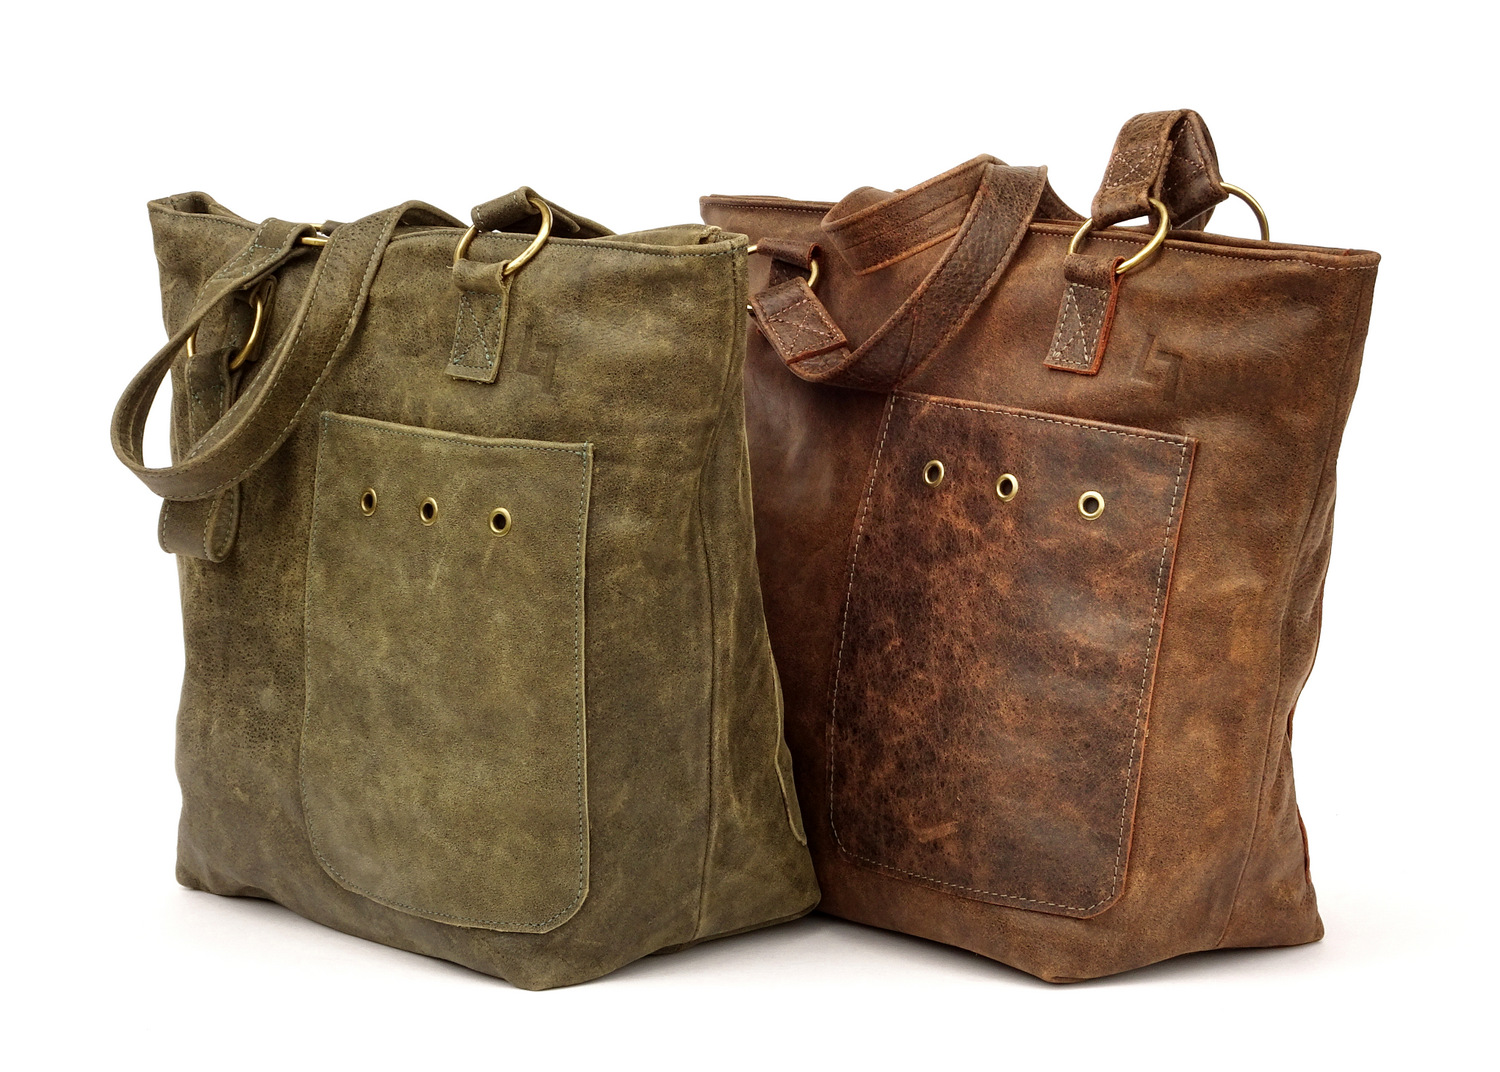 5-Handcrafted Leather Shoulder Bag, Teeny Tote, LaPlace Leather, Memphis -002.JPG